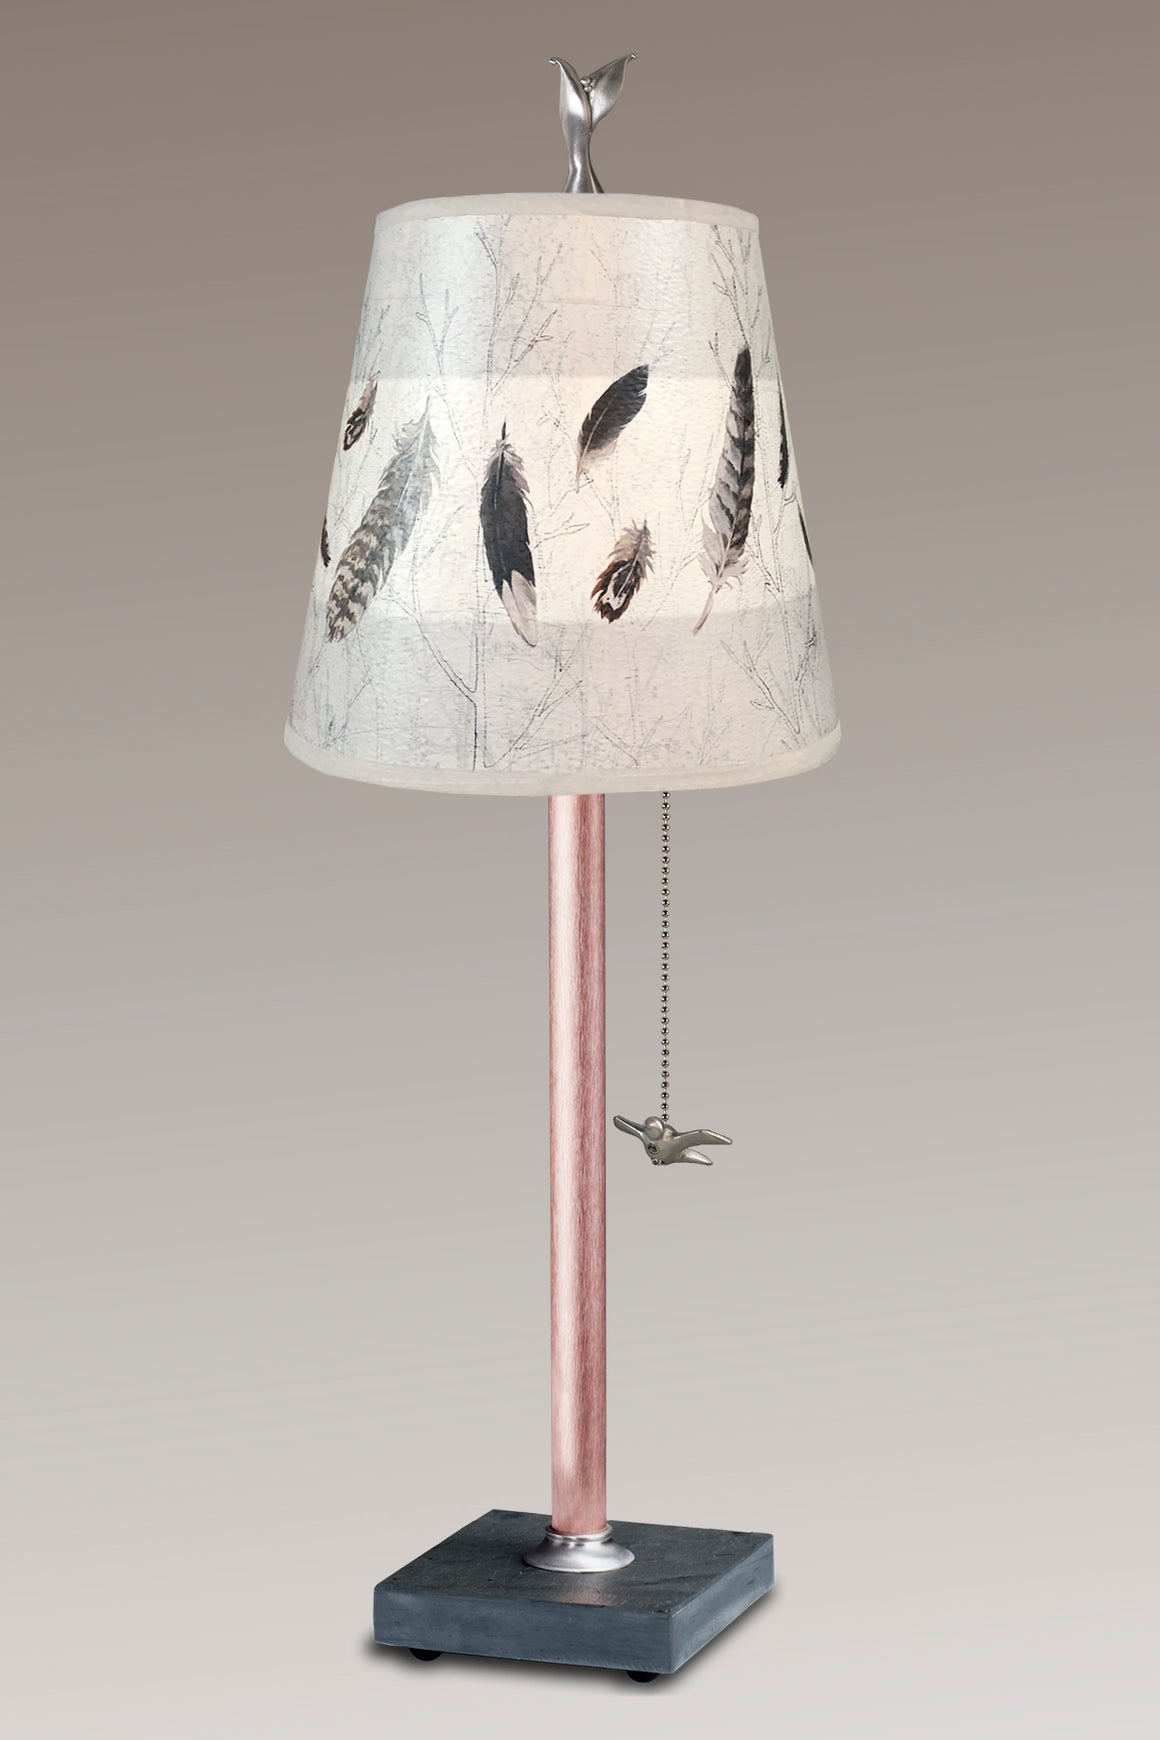 Copper Table Lamp on Vermont Slate Base with Small Drum in Feathers in Pebble